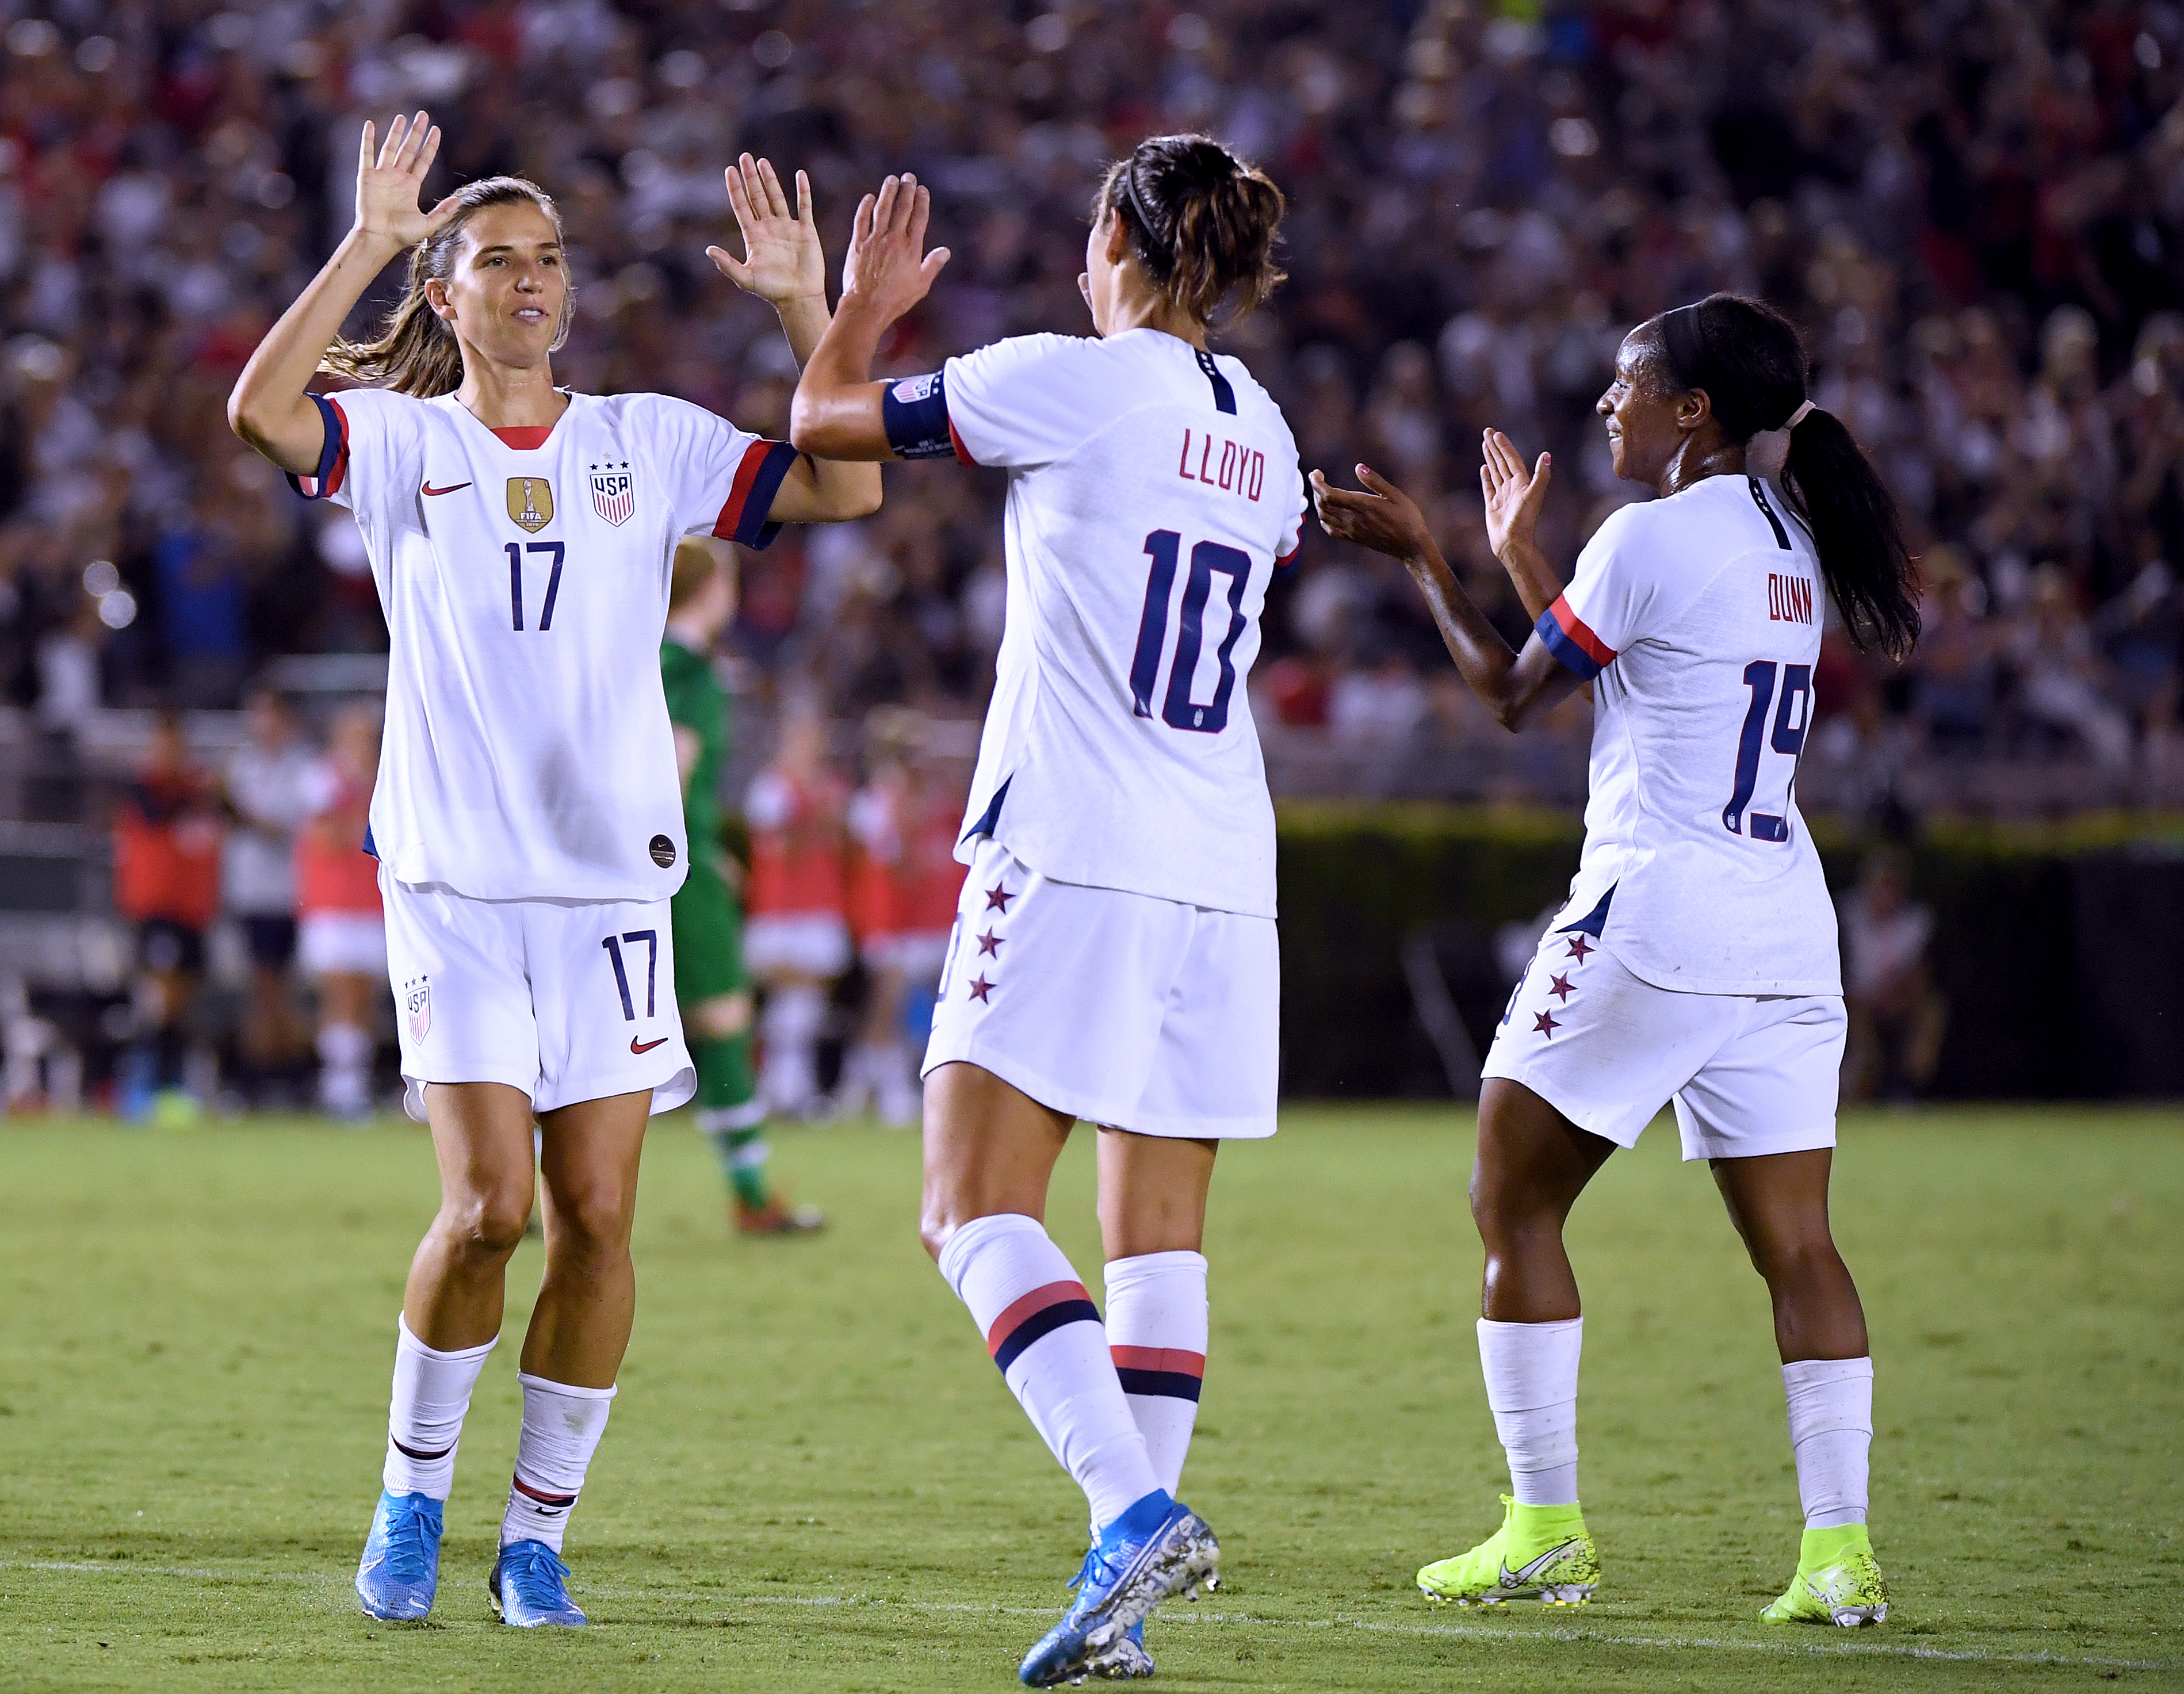 Carli Lloyd #10 of the United States celebrates her goal with Tobin Heath #17 and Crystal Dunn #19, to take a 3-0 lead over the Republic of Ireland, during the first half of the first game of the USWNT Victory Tour at Rose Bowl on August 03, 2019 in Pasadena, California.